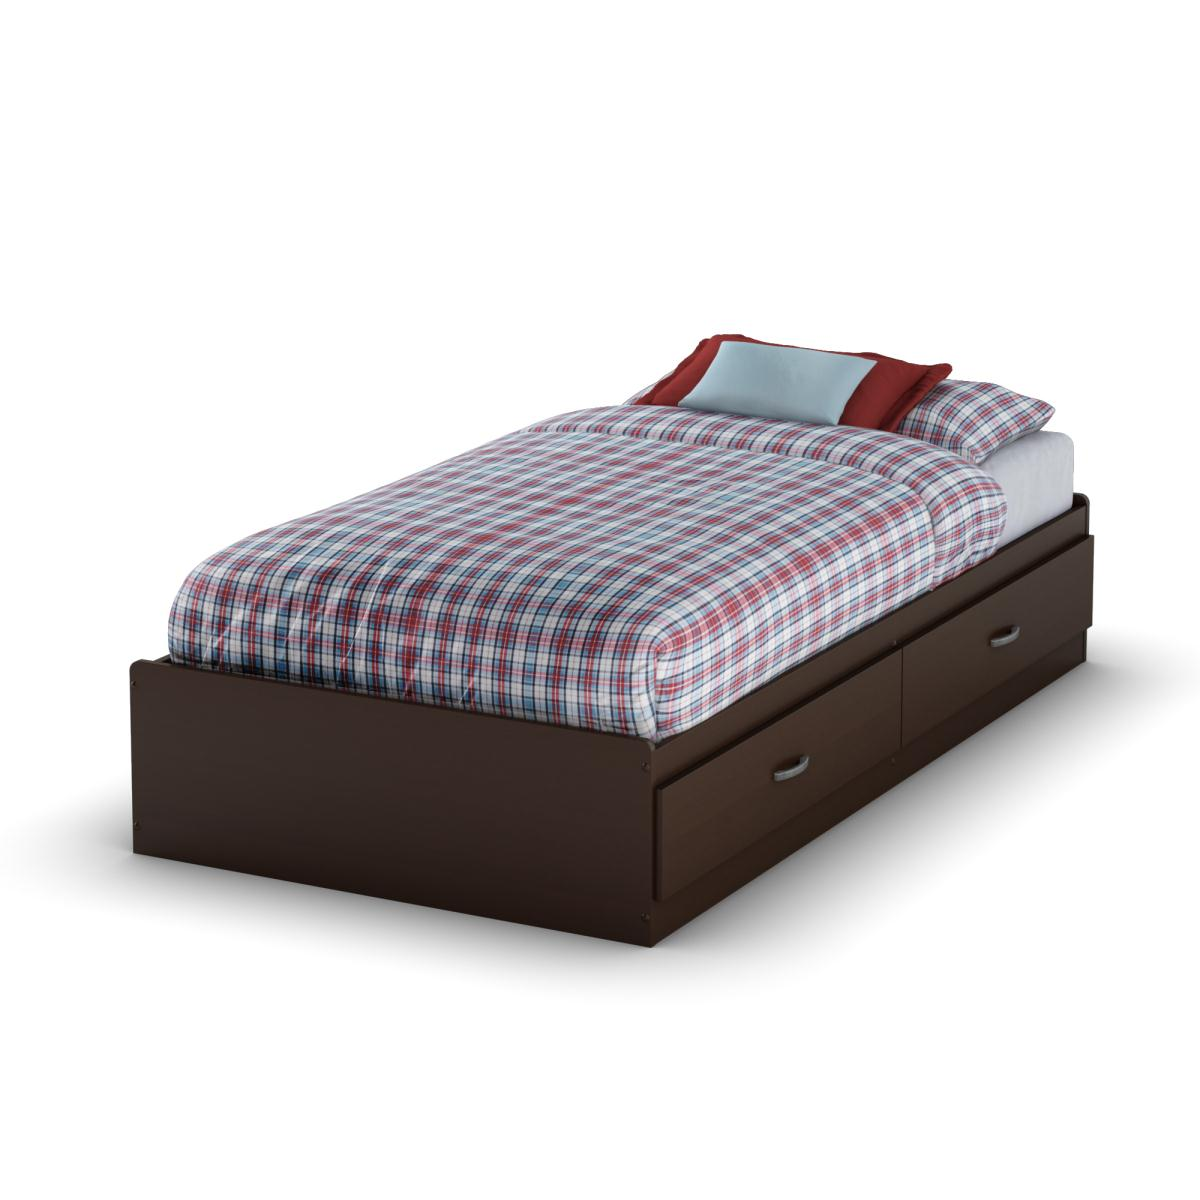 South Shore Logik Twin Mates Bed - Chocolate